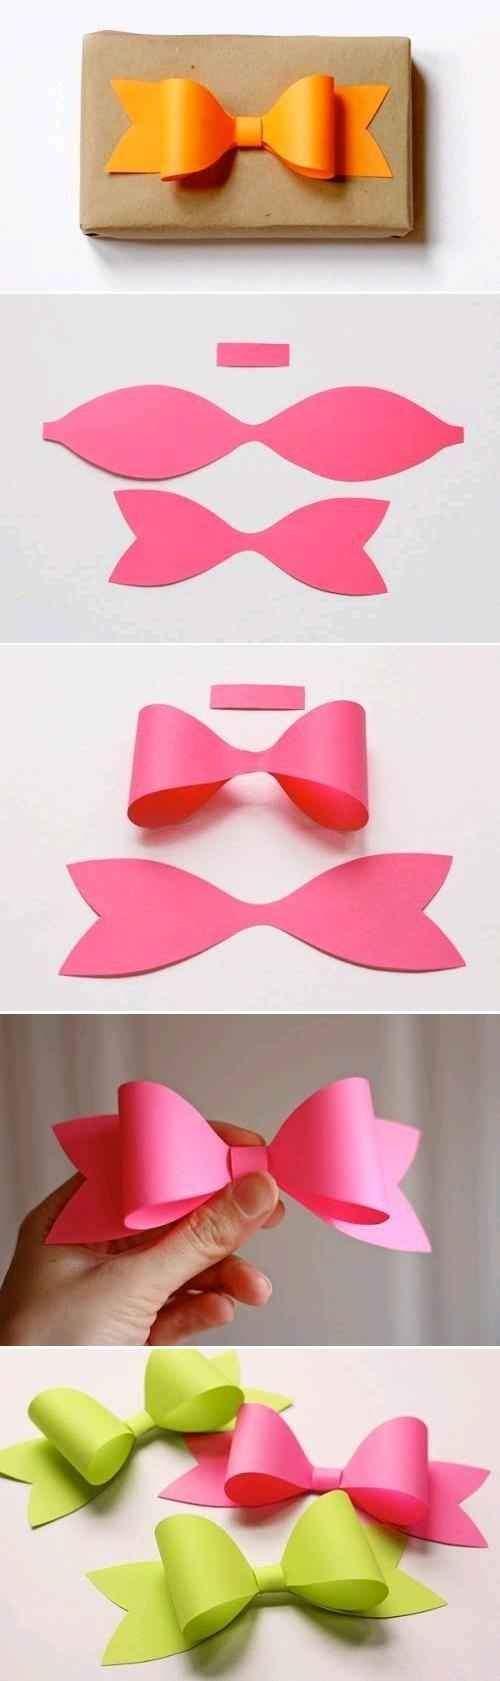 Easy Paper Bow Gift Wrapping.